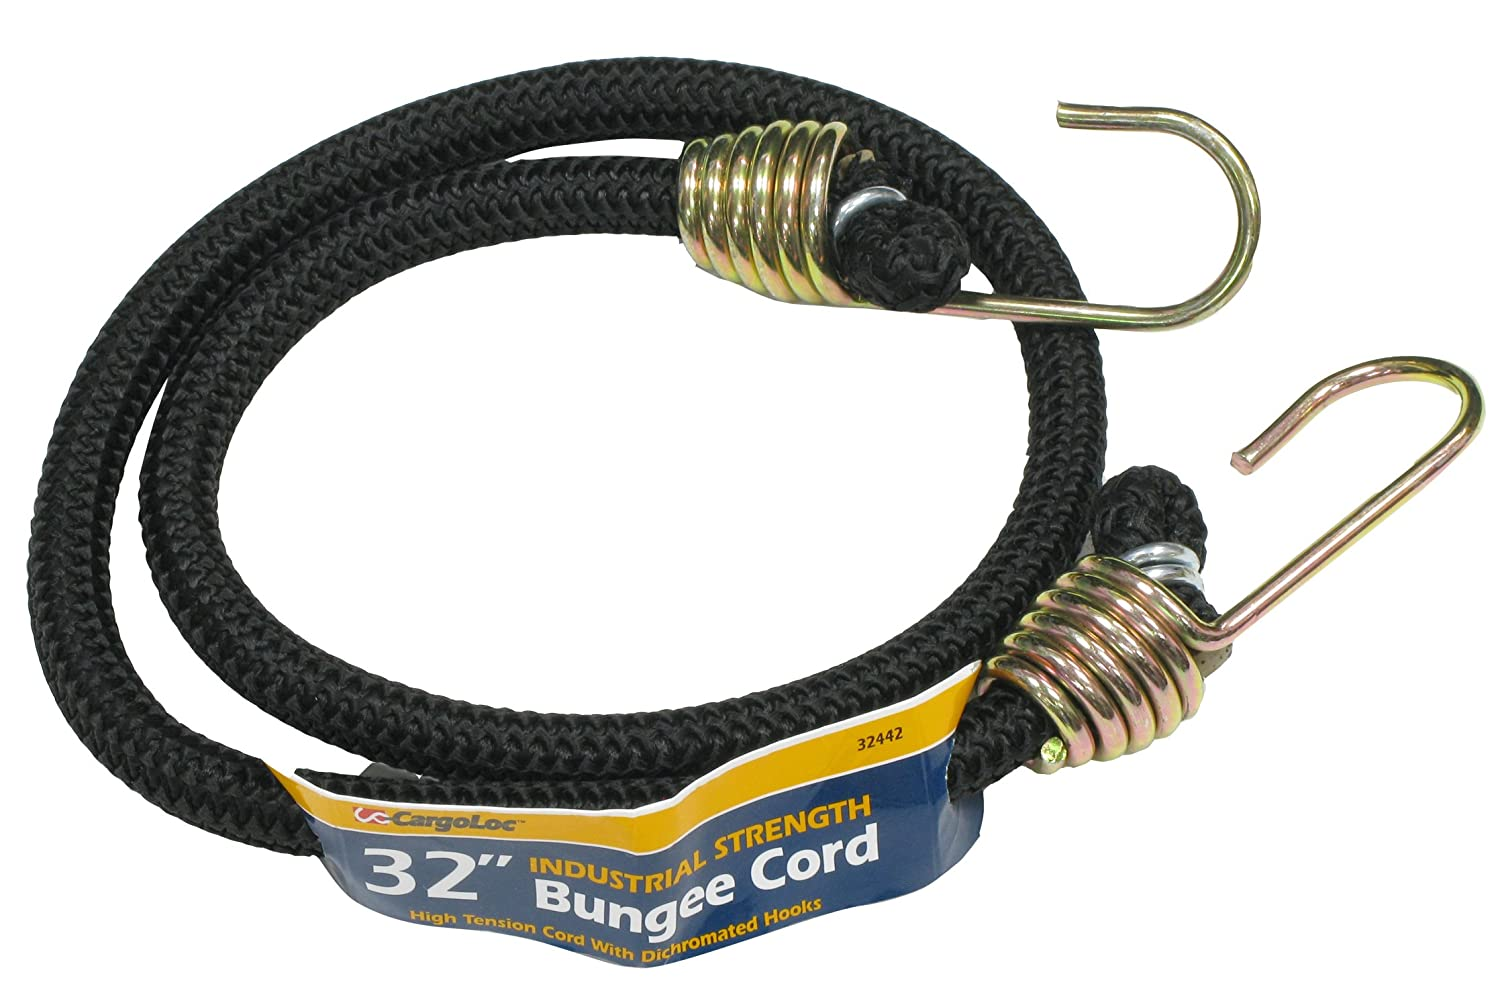 CargoLoc 32444 Industrial Bungee Cords with Dichromate Steel Hooks, 48-Inch, Black